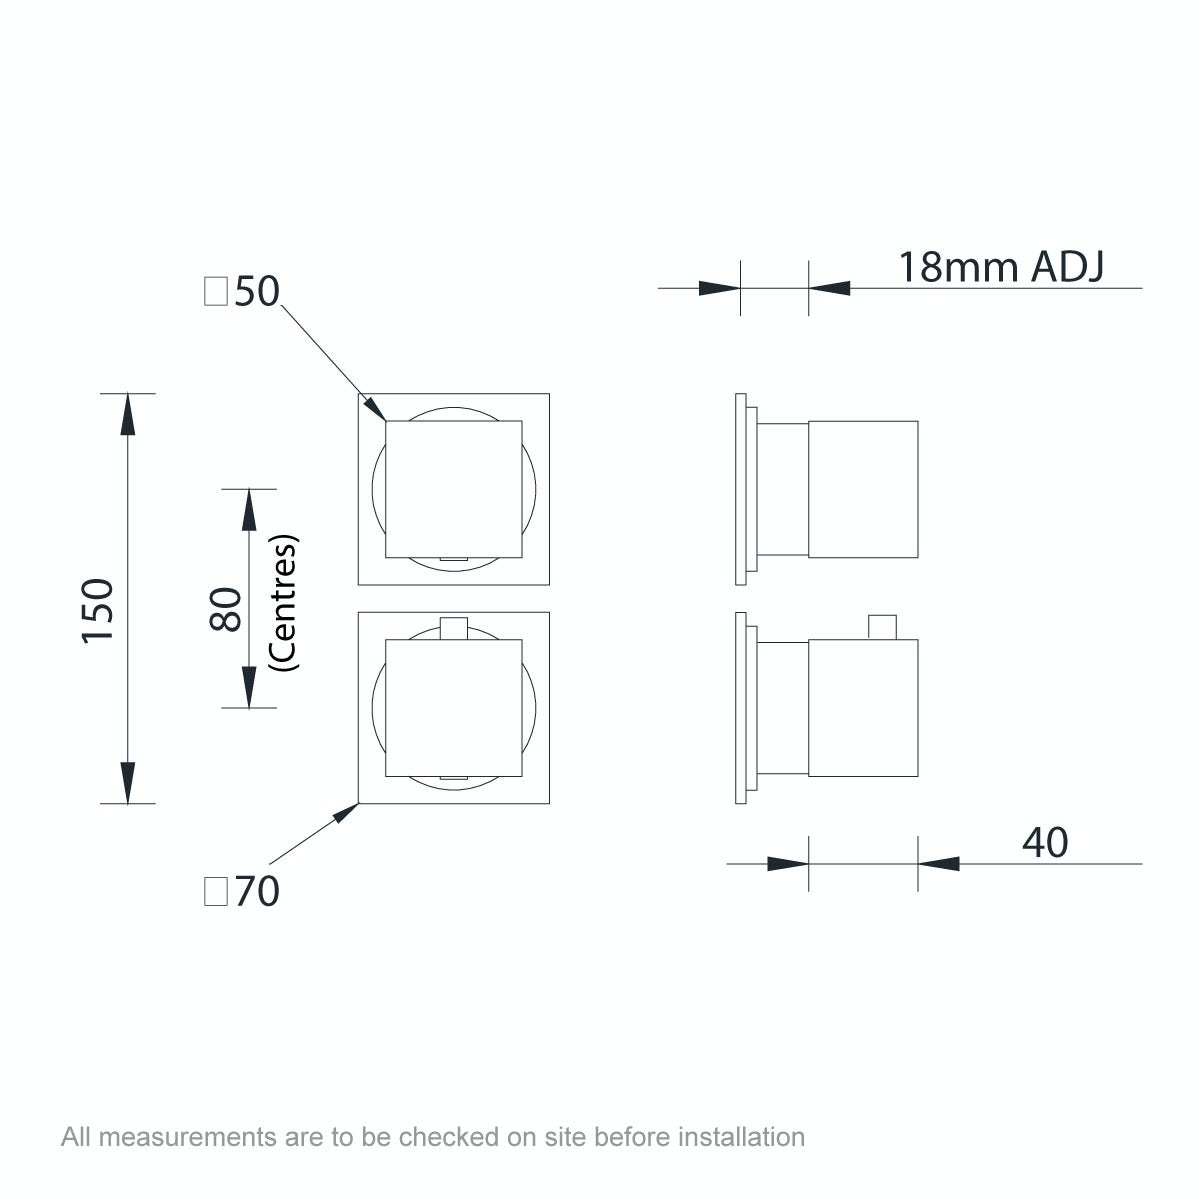 Dimensions for Mode Cooper square twin thermostatic shower valve